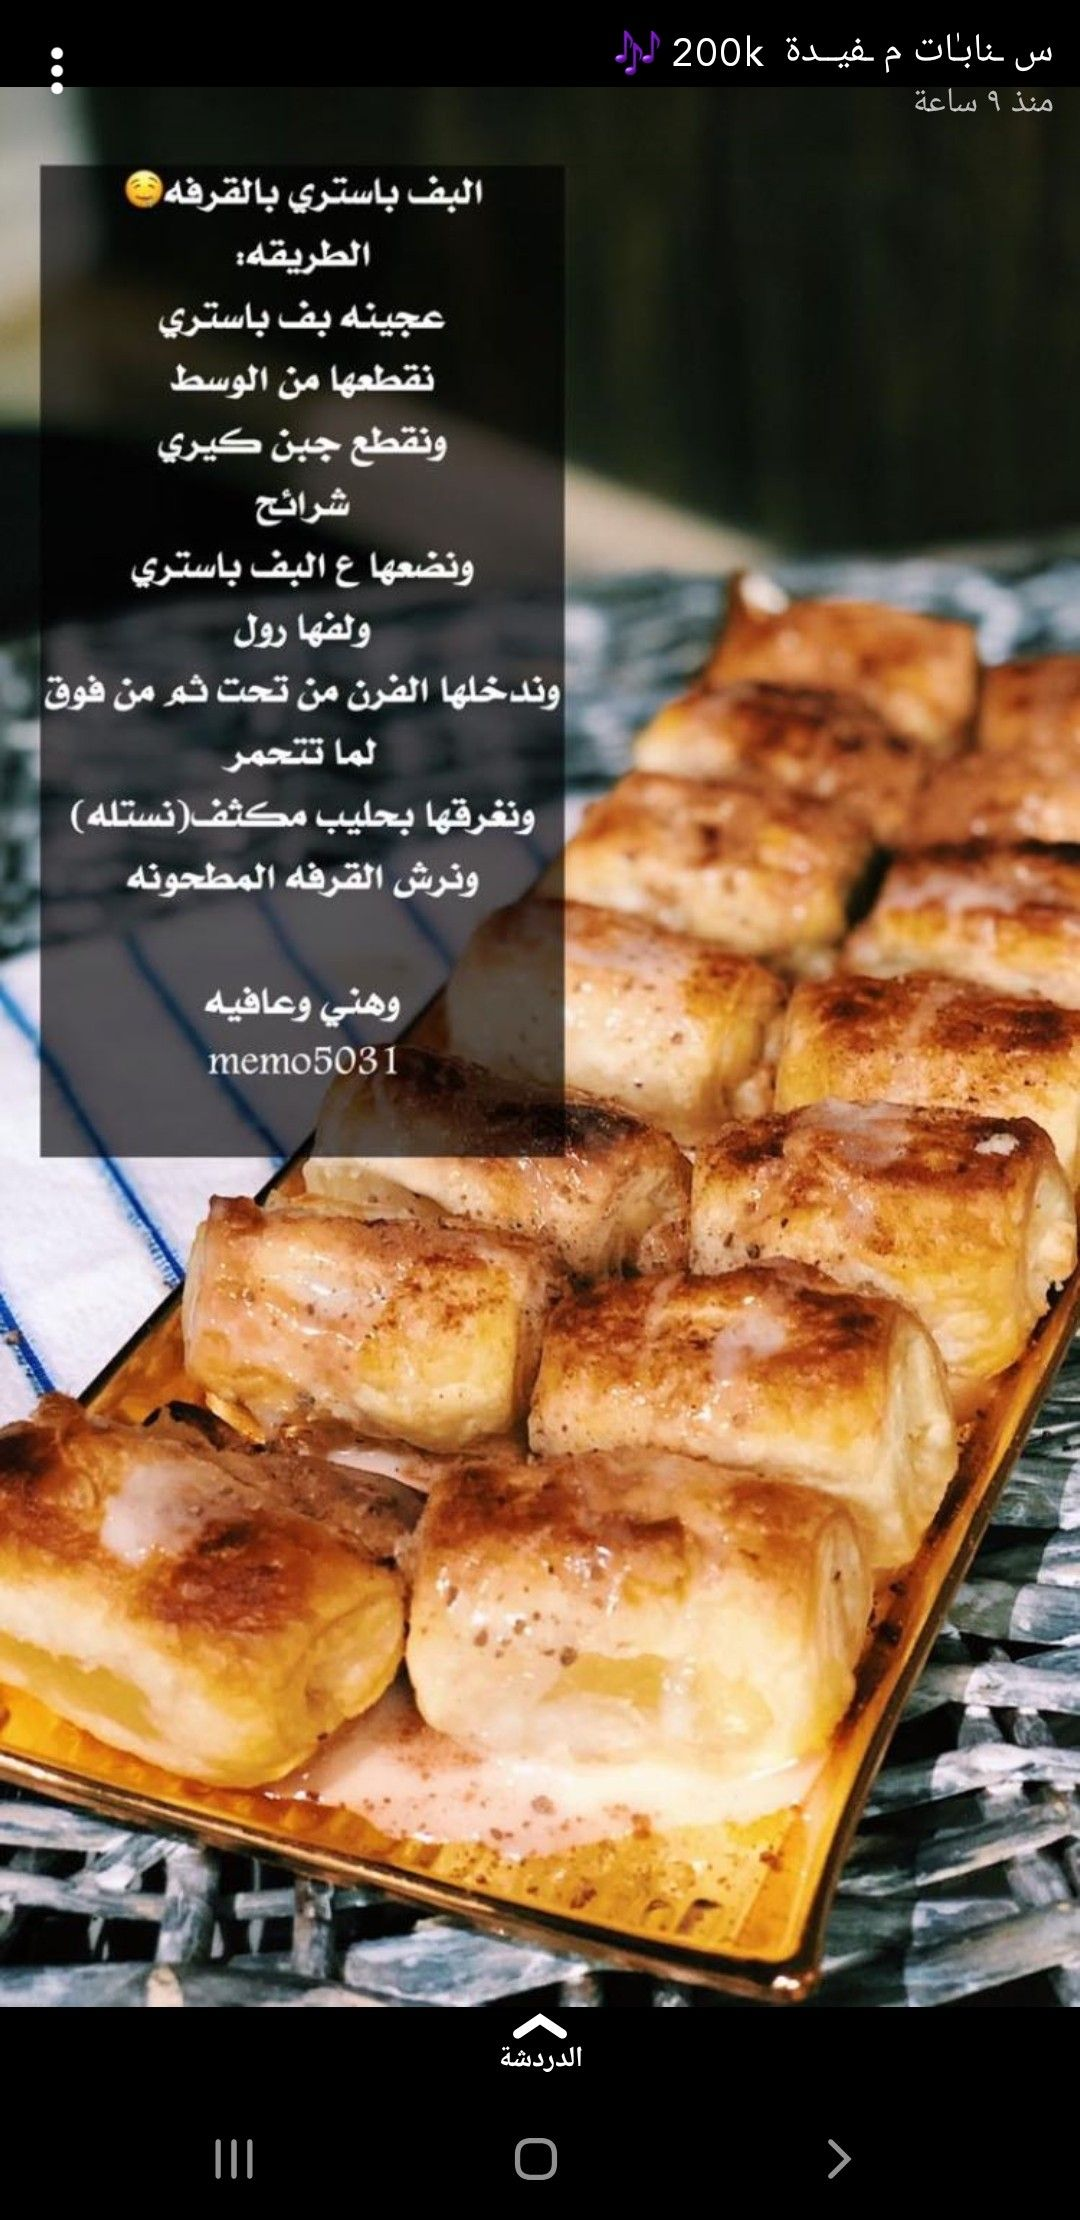 Pin By Sakina Adel On Yummy Food Want To Try Diy Food Recipes Sweets Recipes Yummy Food Dessert